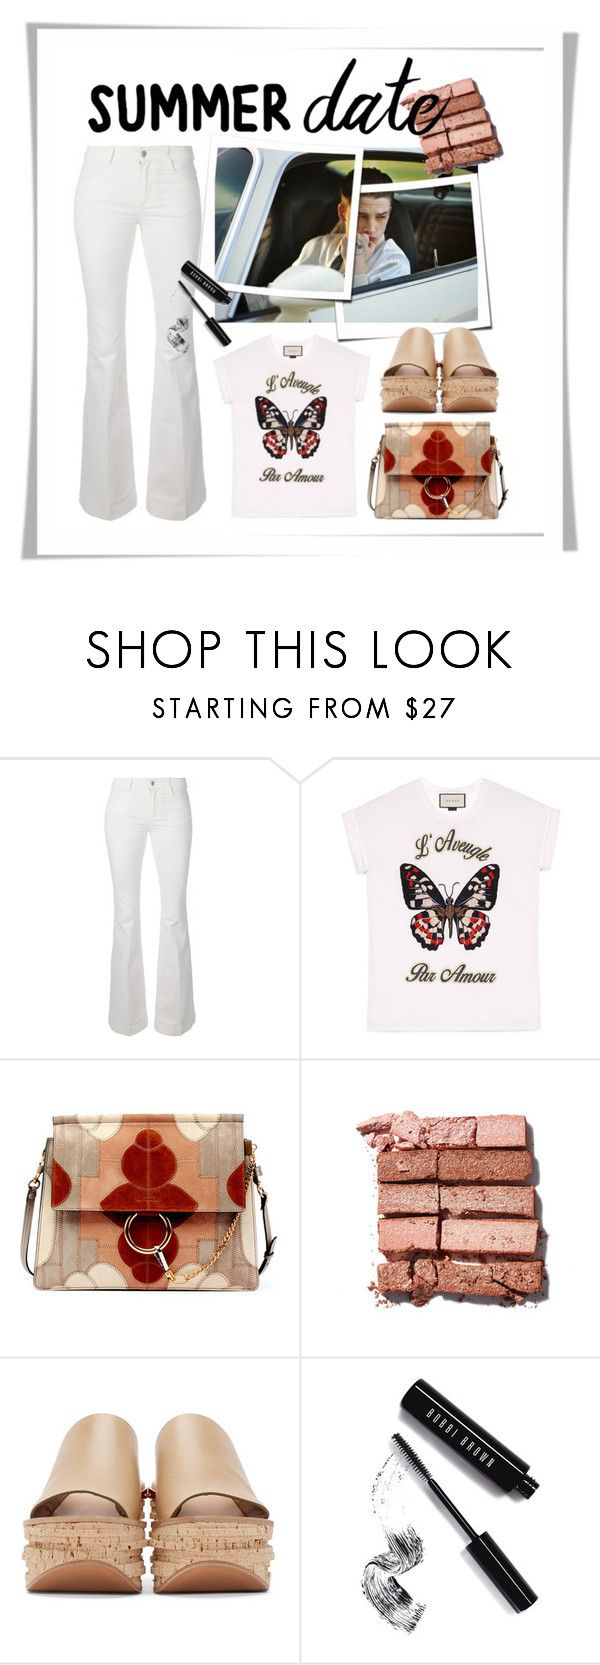 """Untitled #961"" by kvietok ❤ liked on Polyvore featuring STELLA McCARTNEY, Gucci, Chloé, Bobbi Brown Cosmetics, DateNight, drivein and summerdate"